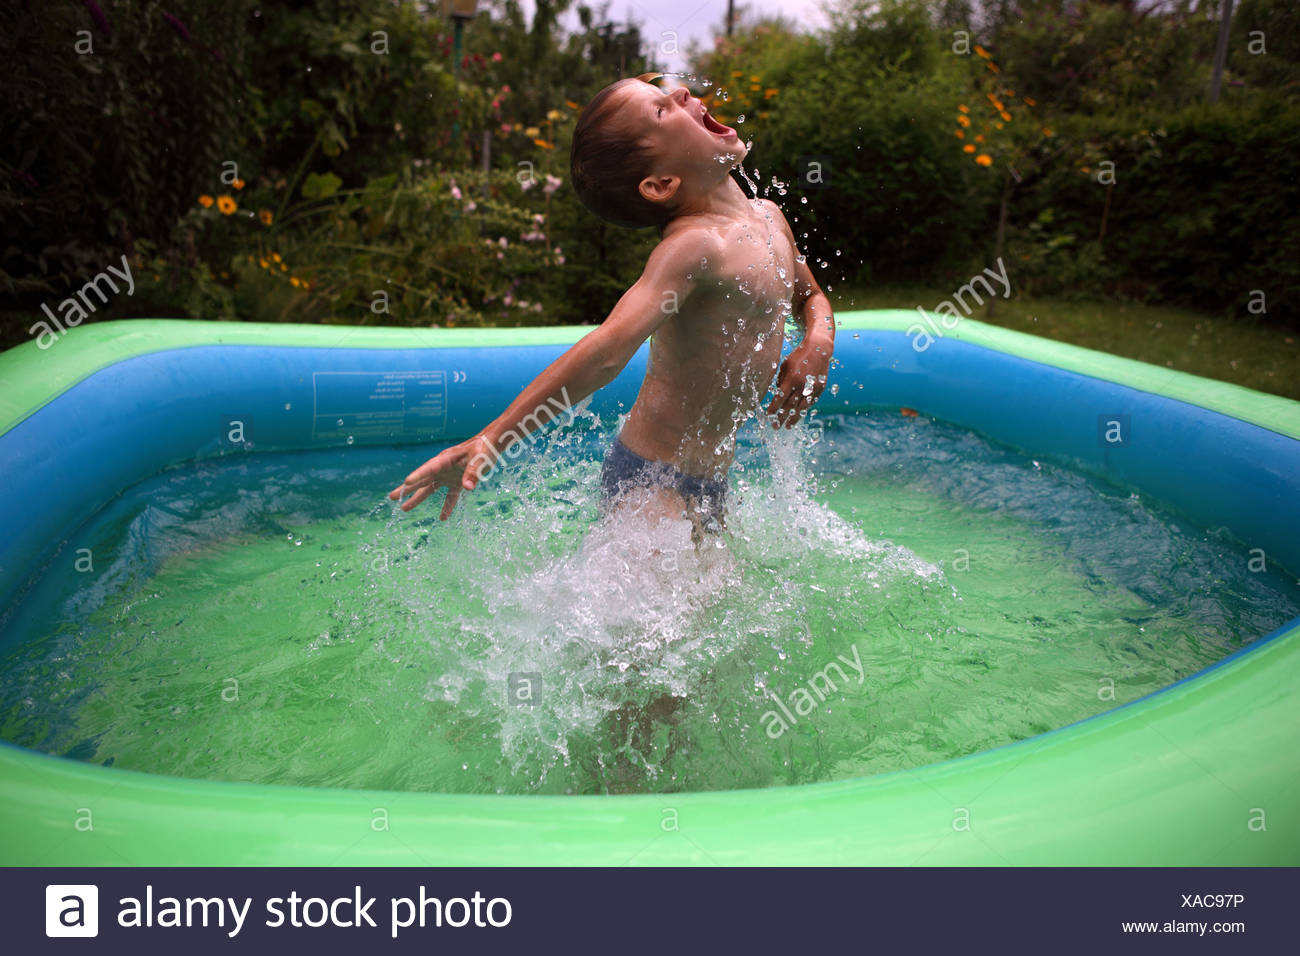 Berlin, Germany, boy rages loudly around in a paddling pool - Stock Image